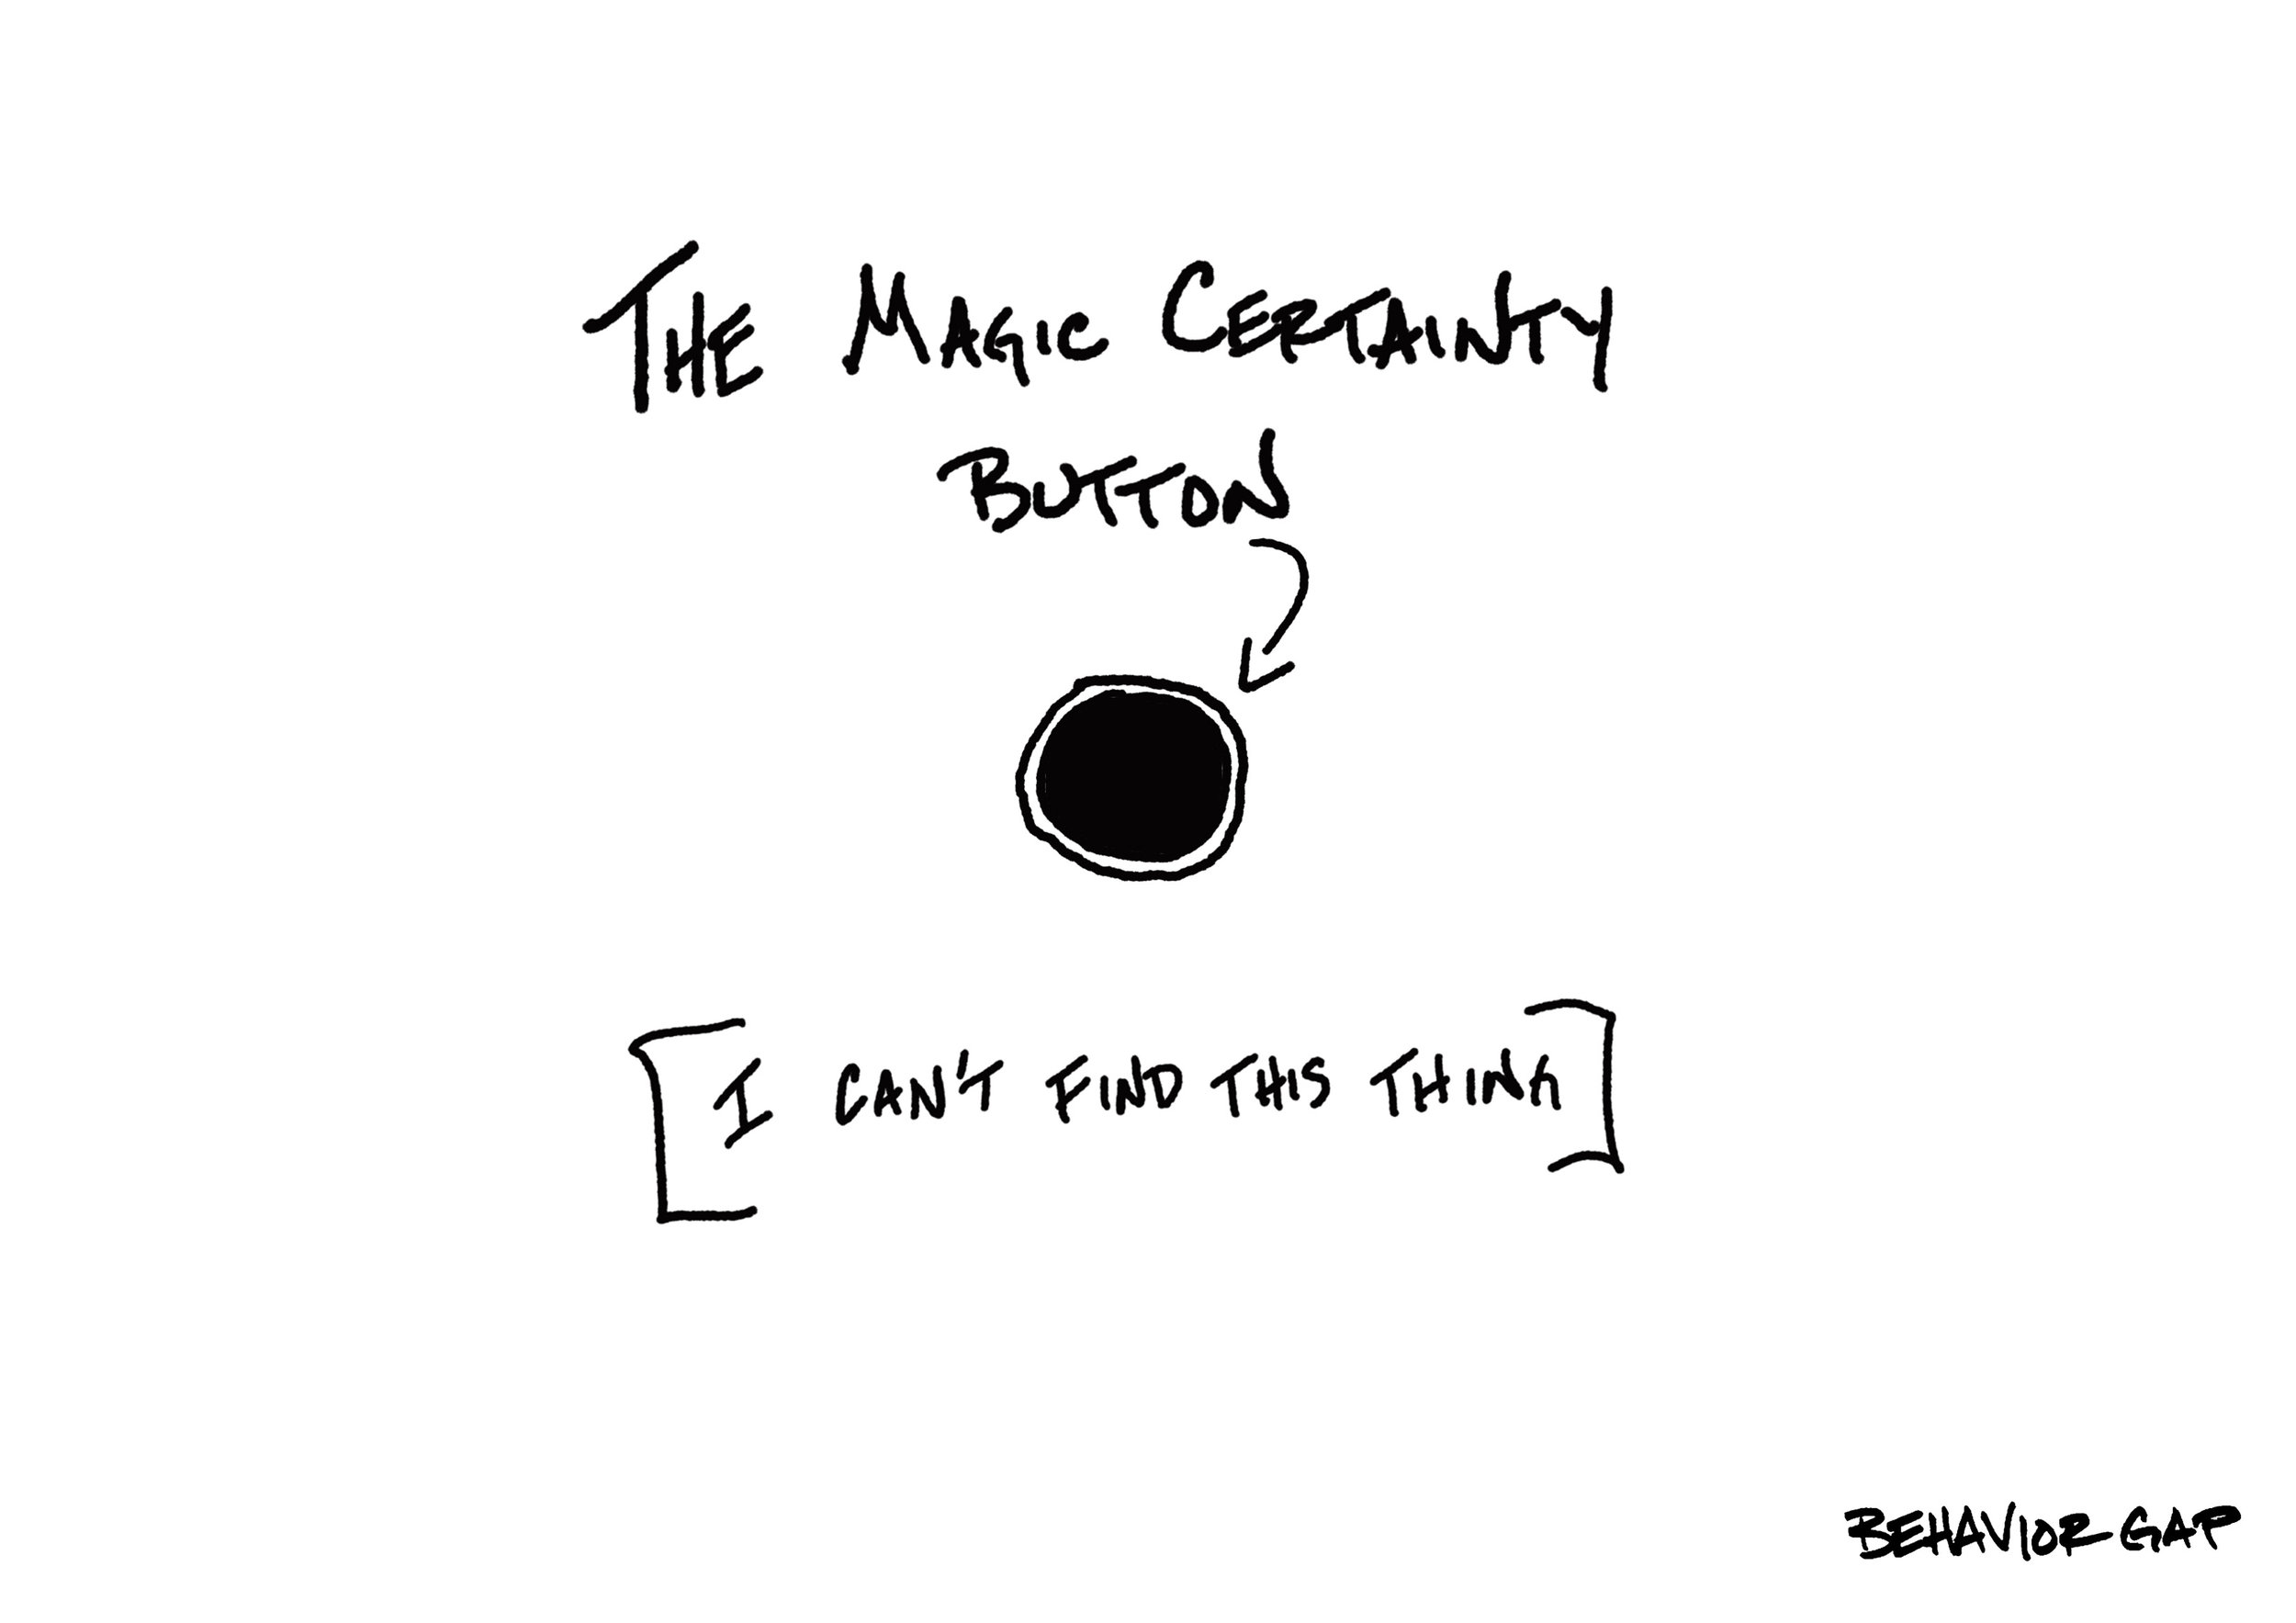 The-certainty-button.jpg